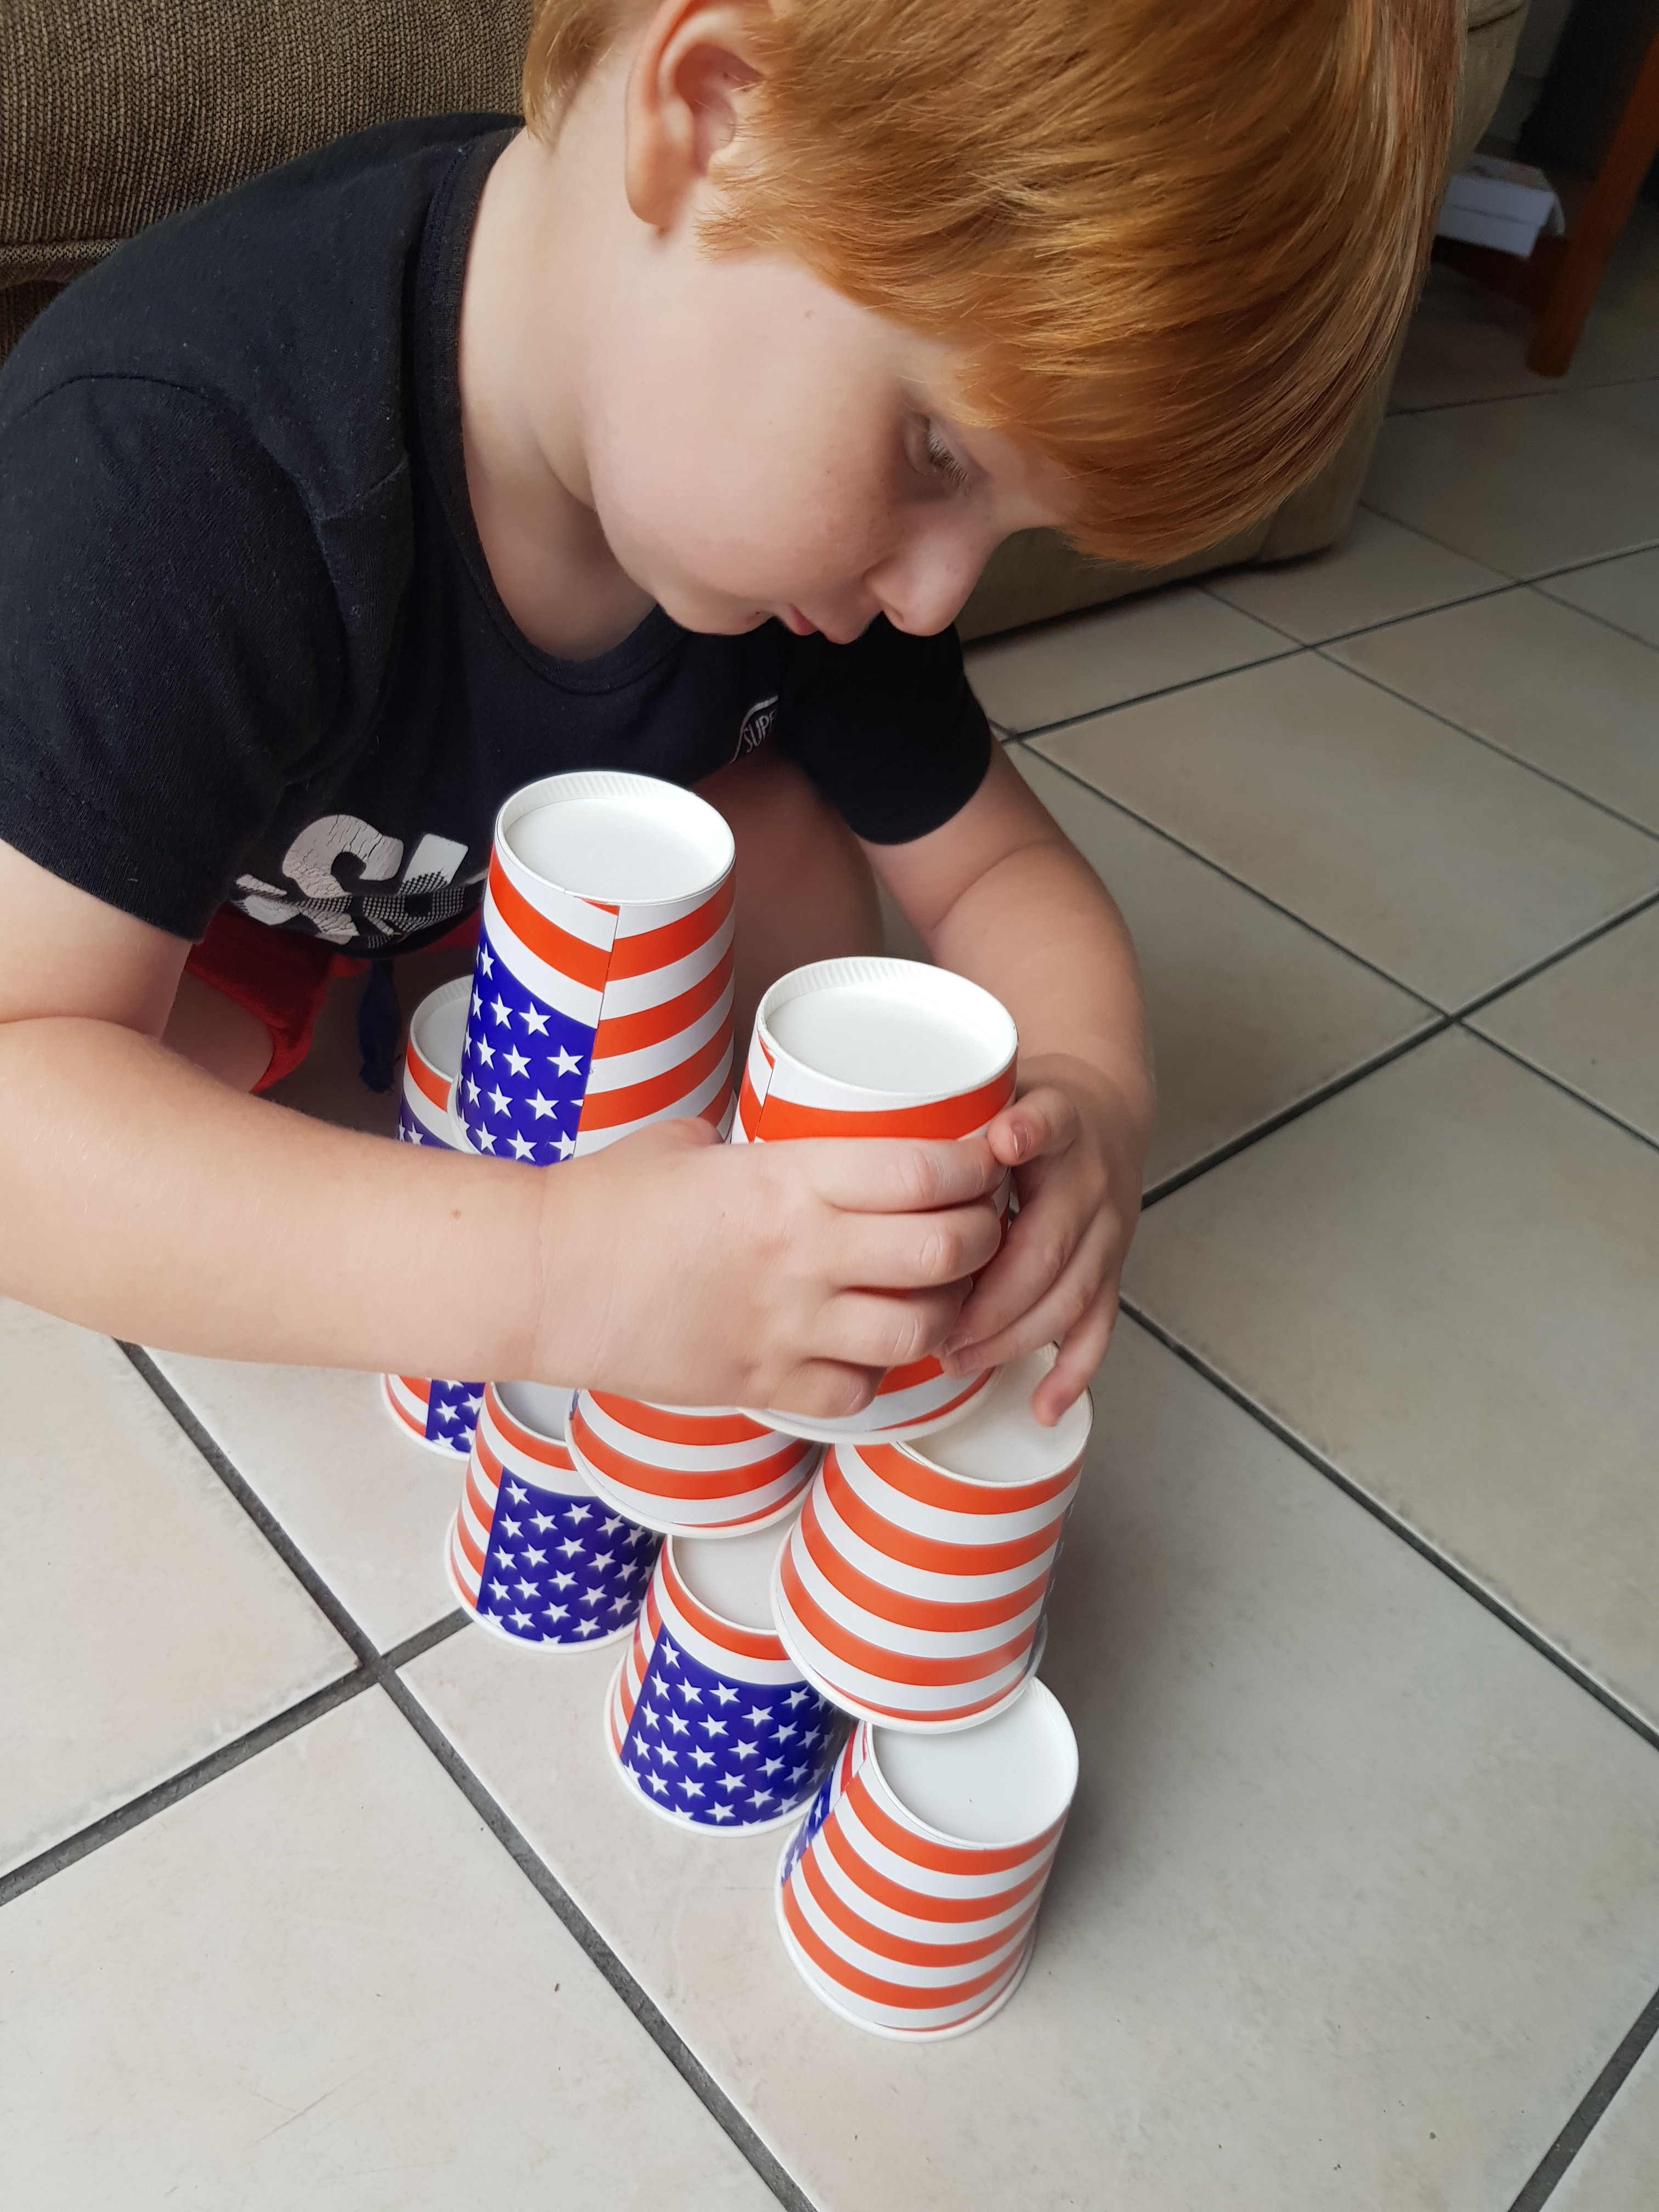 A boy stacking cups